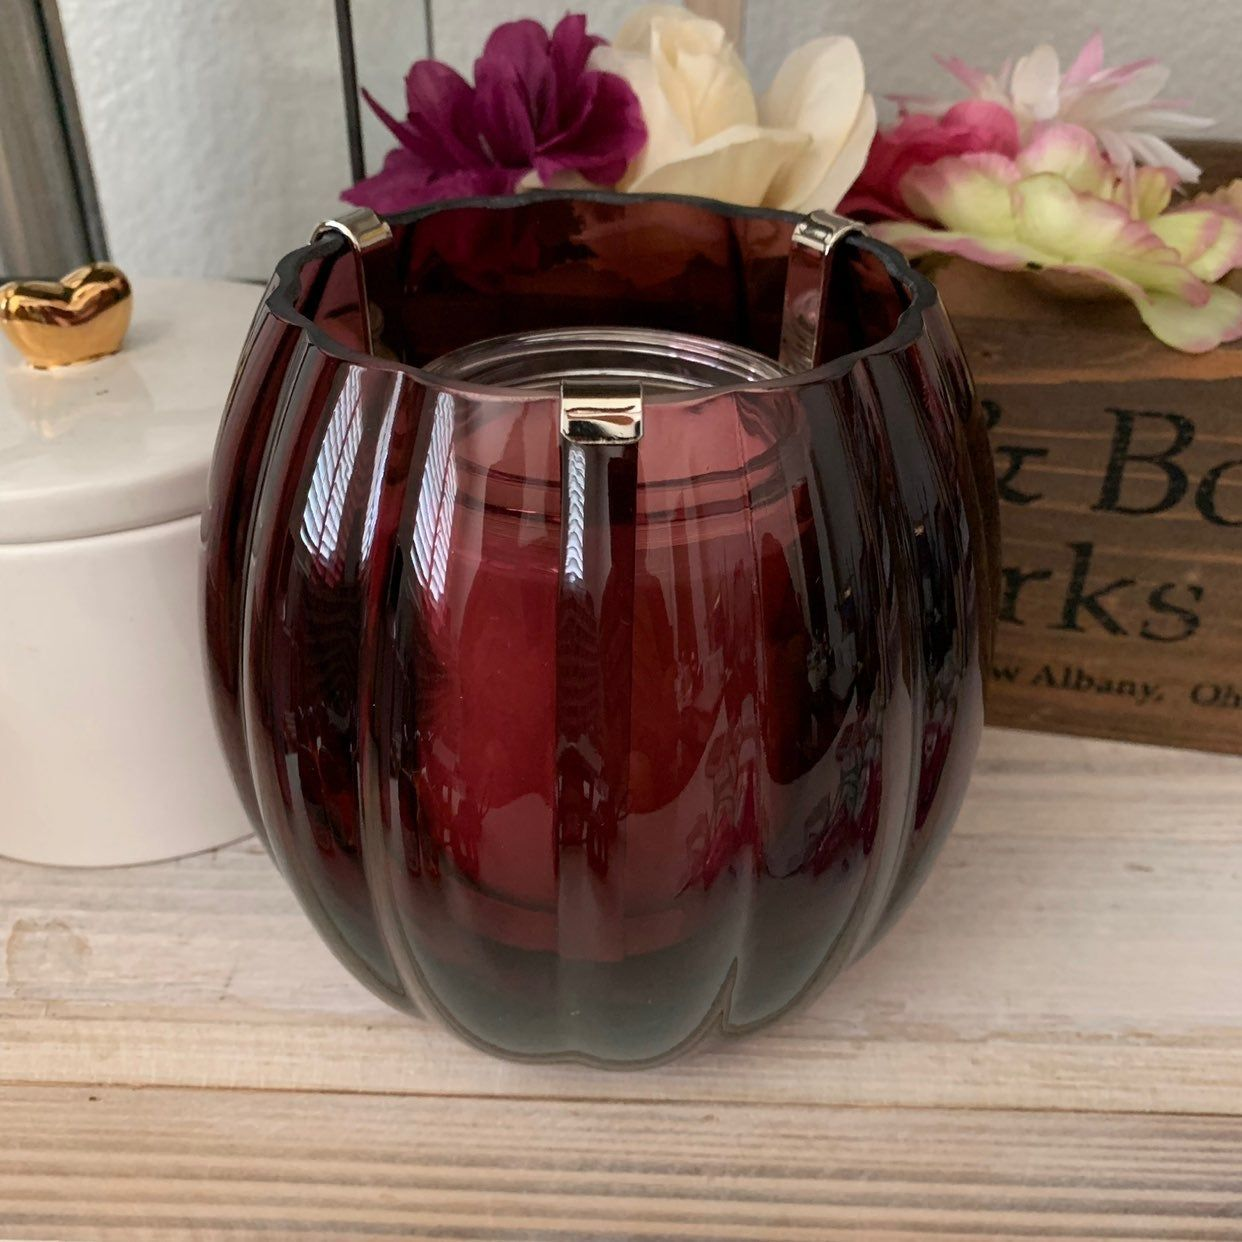 Bath Body Works Plum Glass Luminary Candle Holder Use With Single 1 Wick Candle Candle No Bath Body Works Candles Bath And Body Works Purple Candle Holders